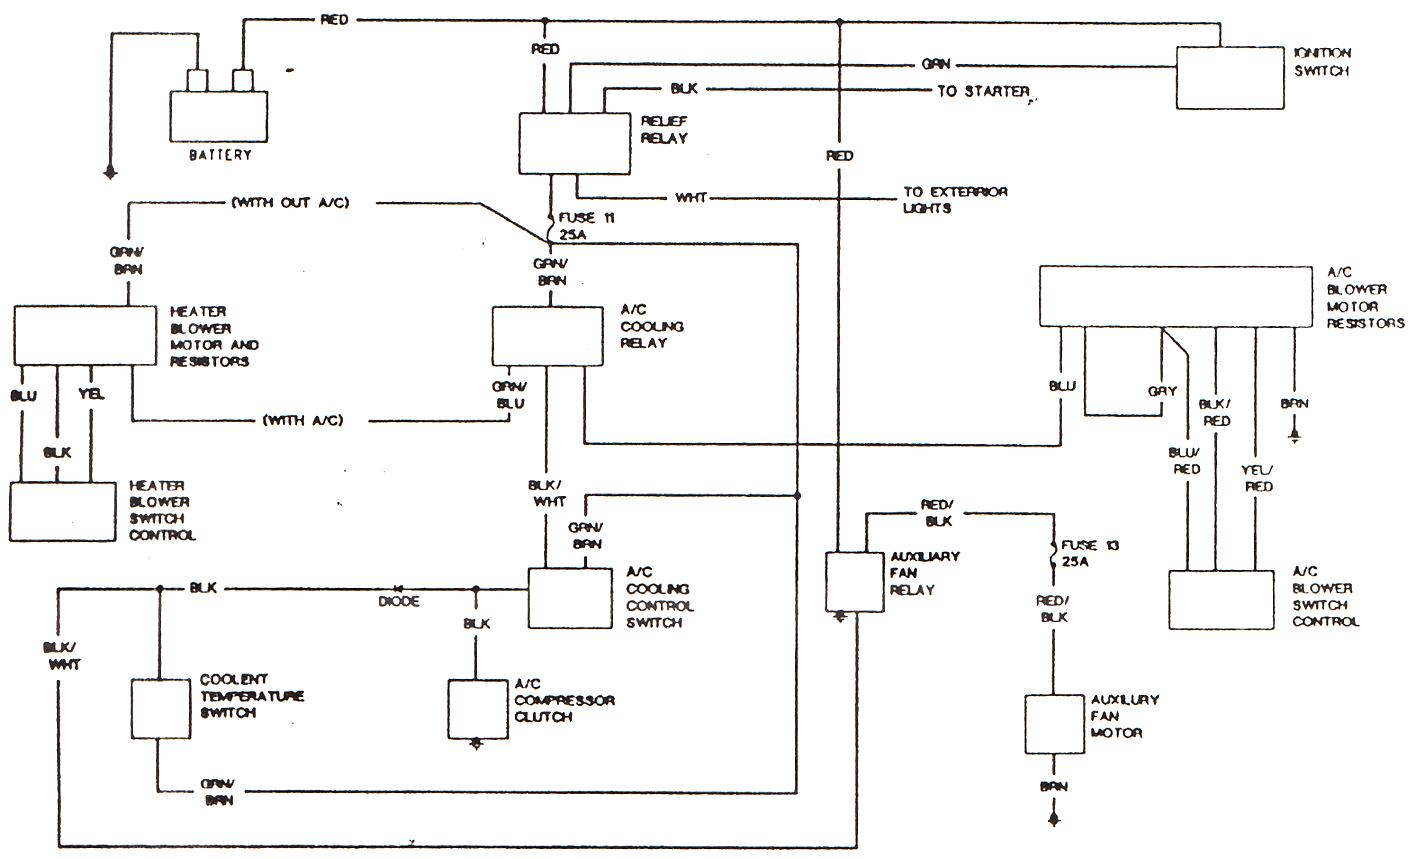 Ac Motor Diagrams2 air conditioner wiring diagram pdf air wiring diagrams collection Air Conditioner Schematic Wiring Diagram at gsmx.co